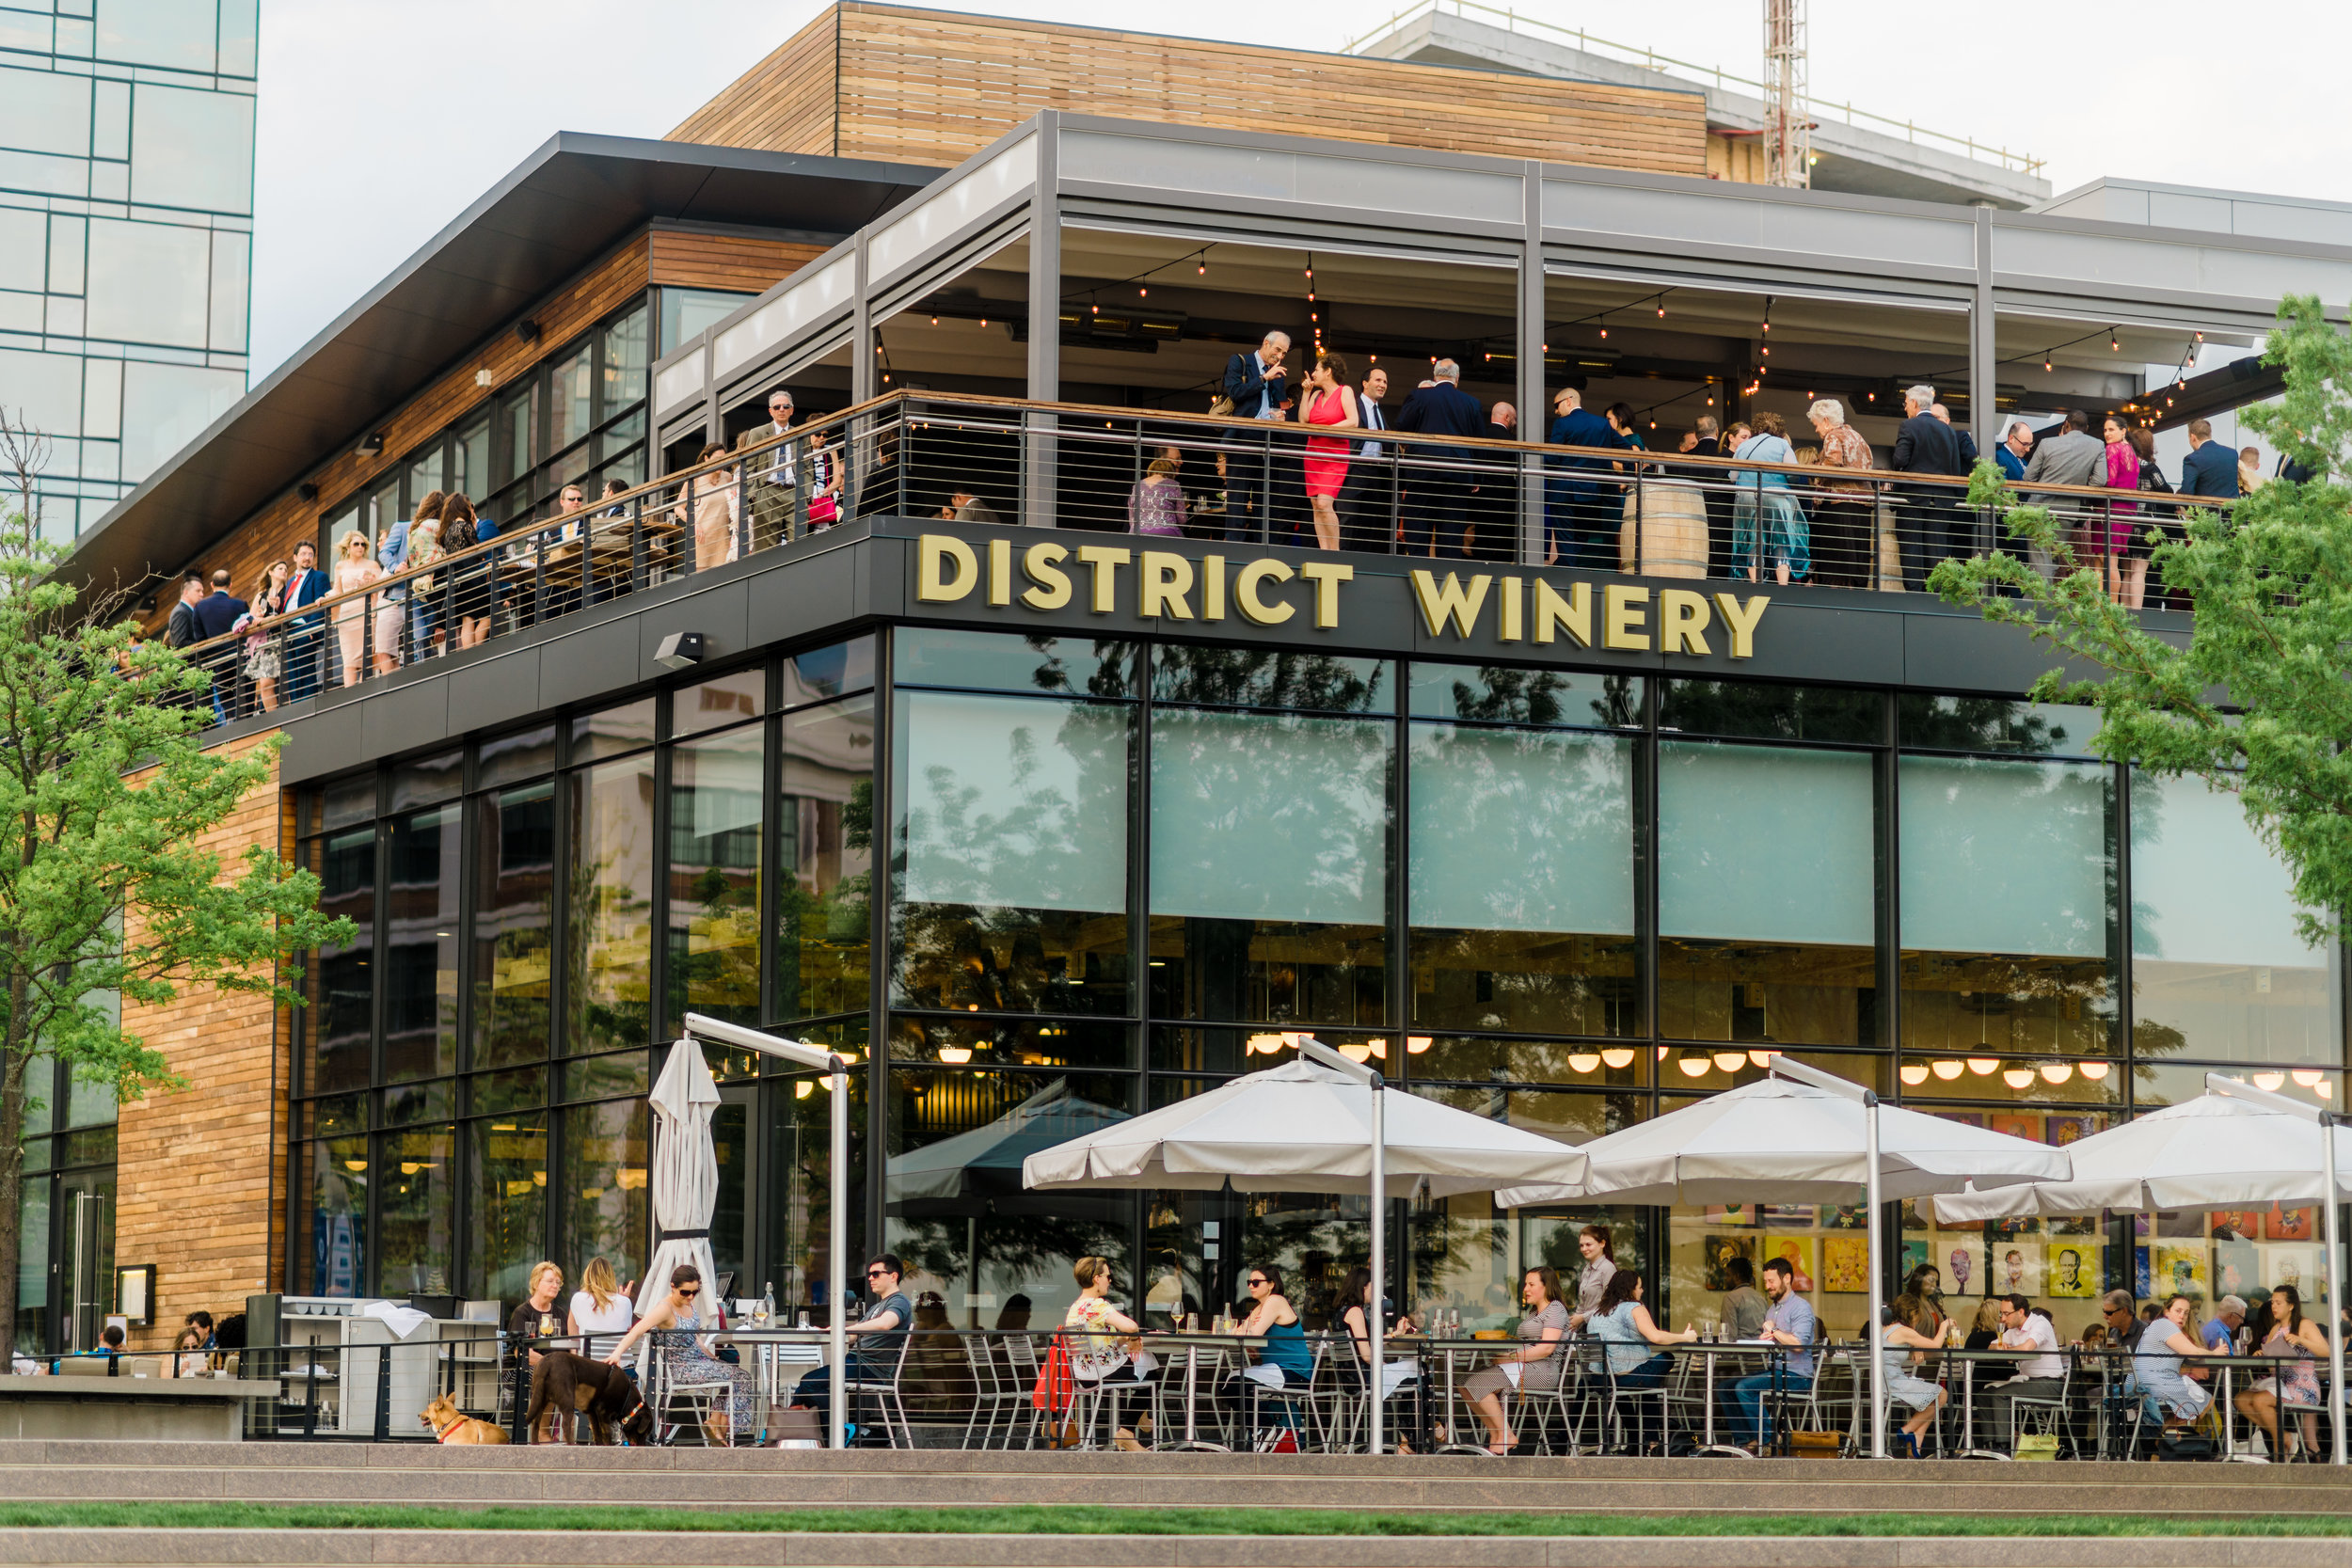 District Winery Exterior.jpg